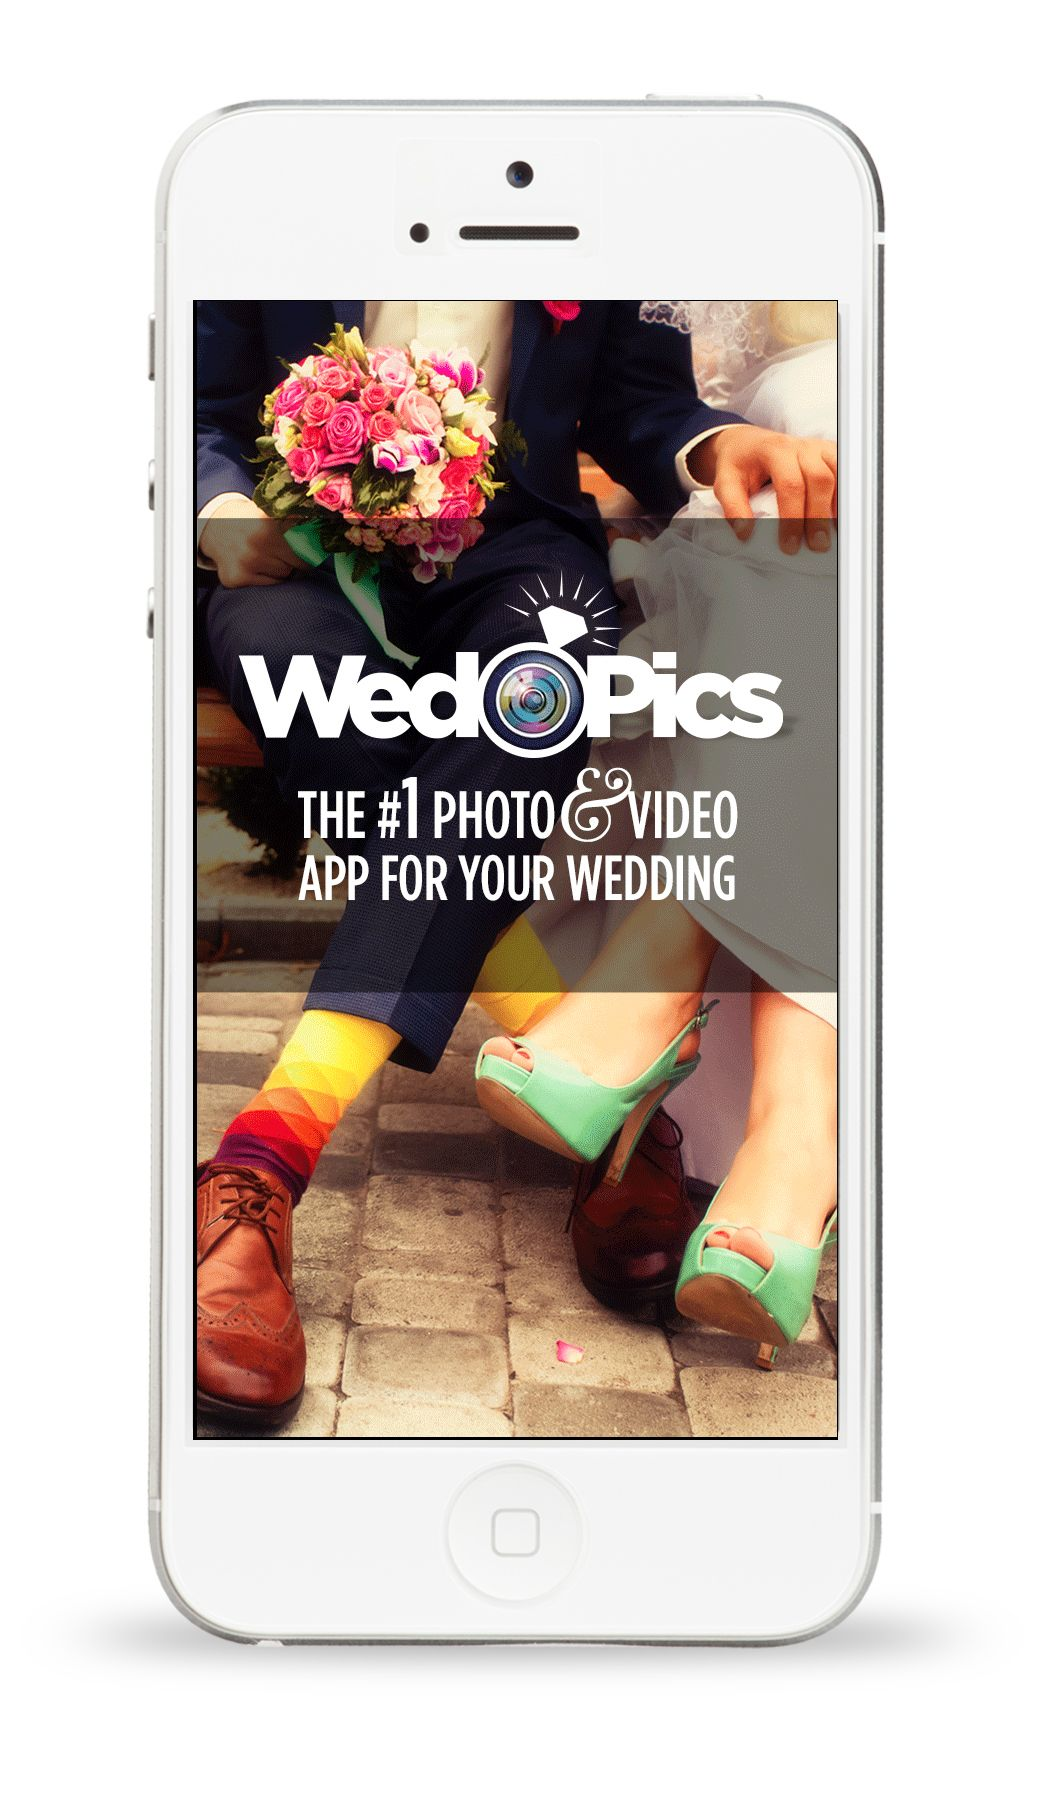 Engaged Ditch The Disposable Cameras And Get Wedpics The 1 Photo Video Sharing App For Weddings It S Free Wedding Photo App Wedding Apps Wedding Pics